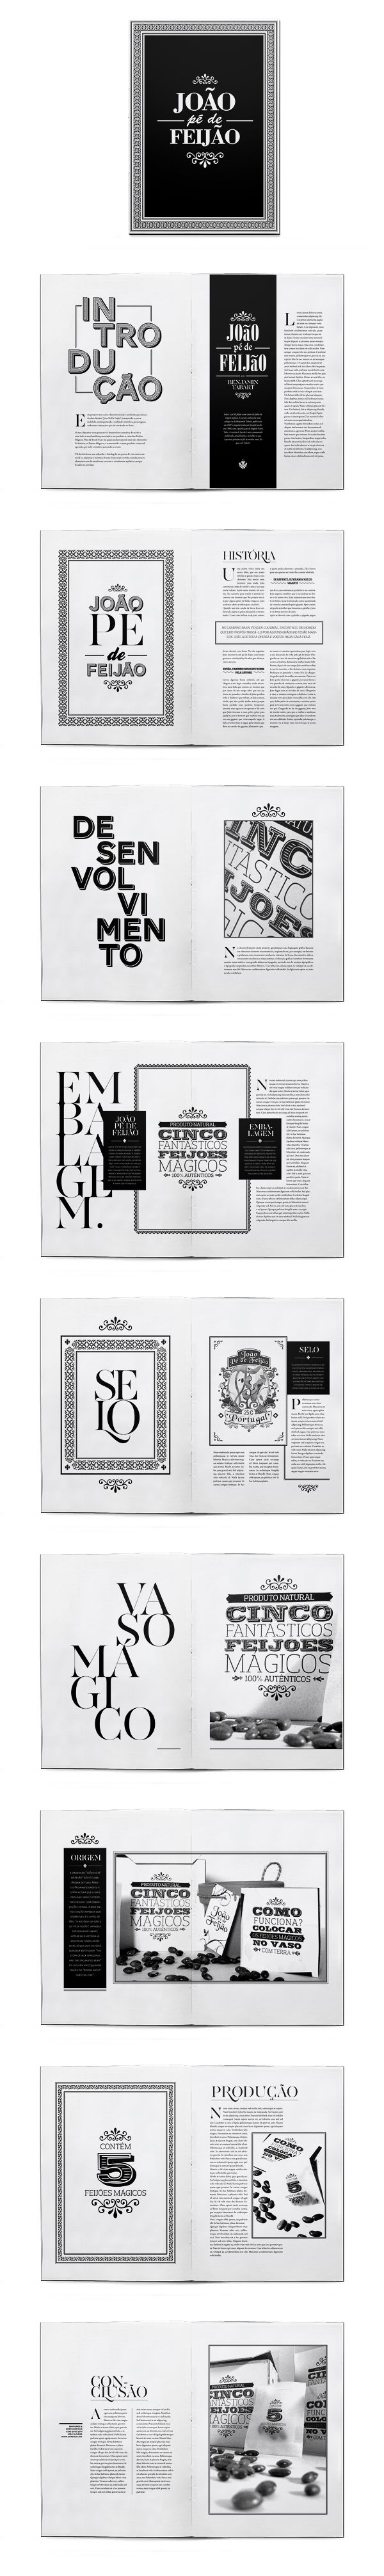 inspiration...page layout, typography, package design.